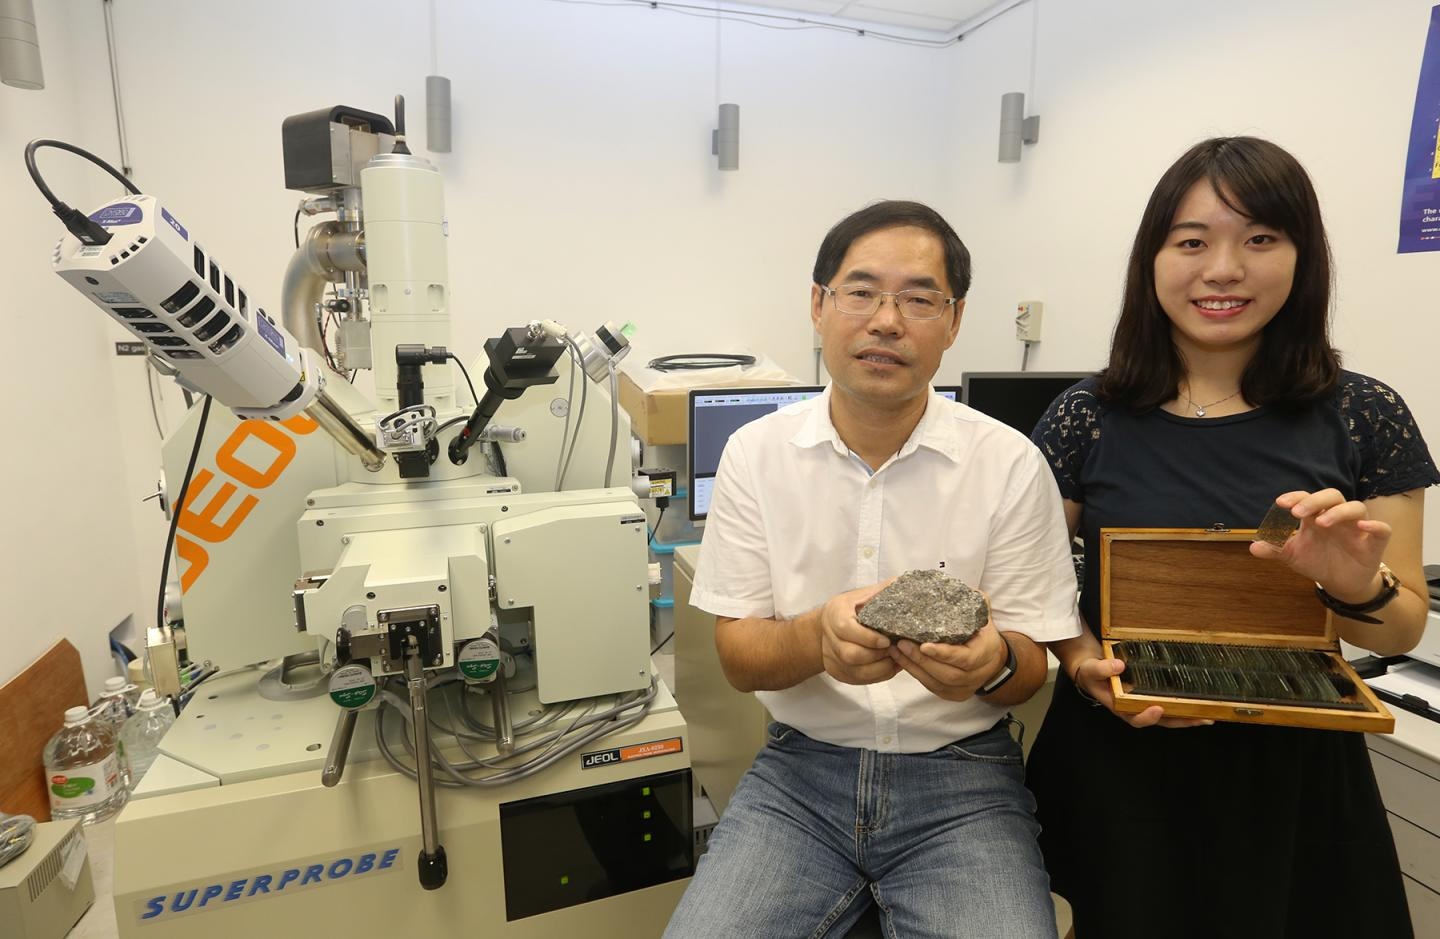 Earth Sciences Student Research On Metamorphic Rock In North China